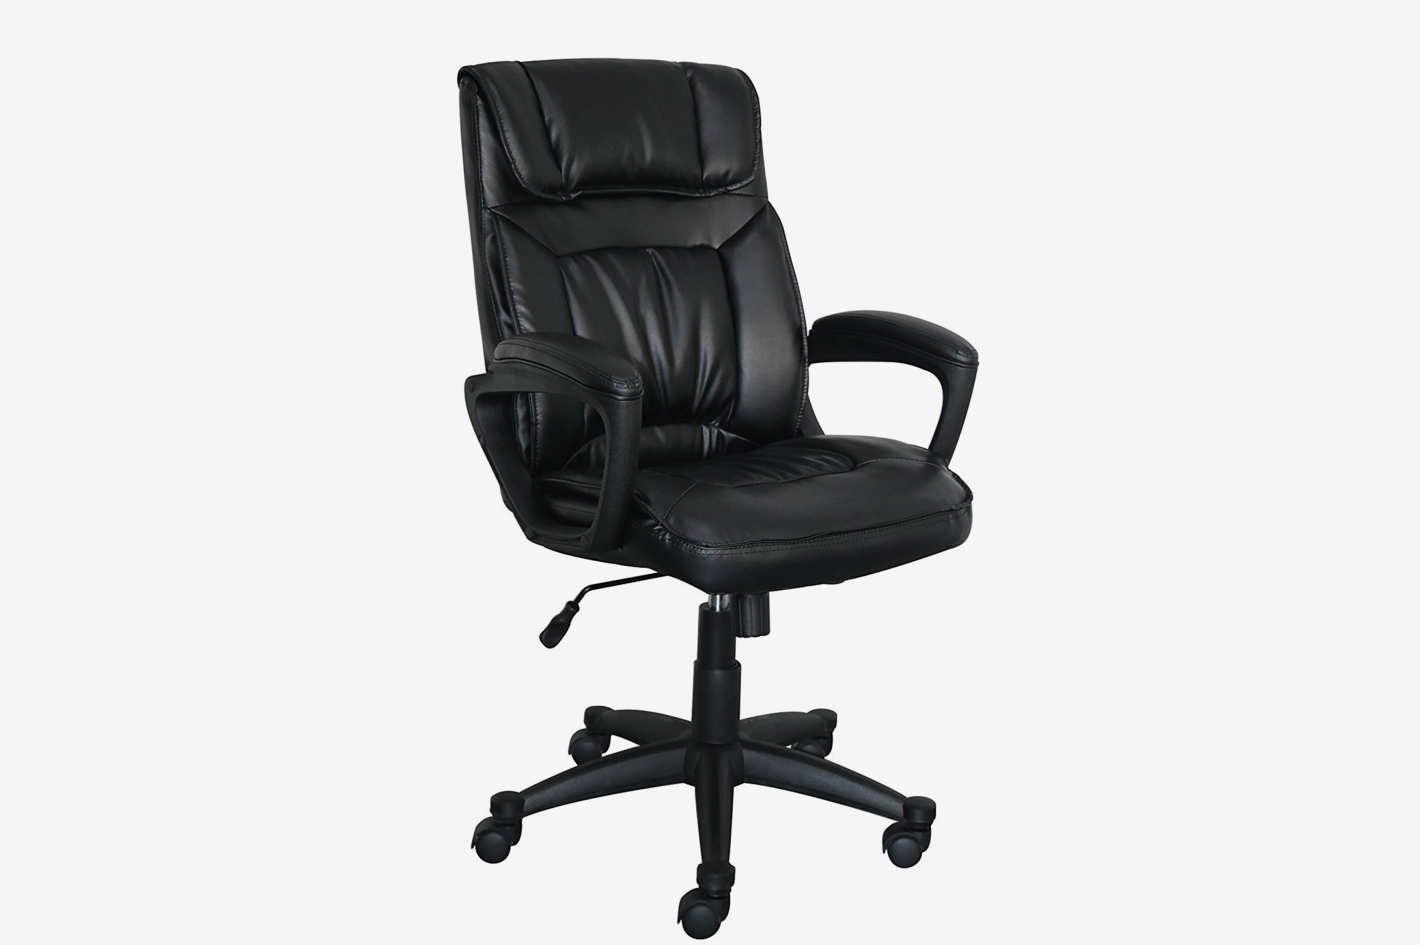 Best ideas about Best Home Office Chair . Save or Pin 16 Best fice Chairs and Home fice Chairs — 2018 Now.